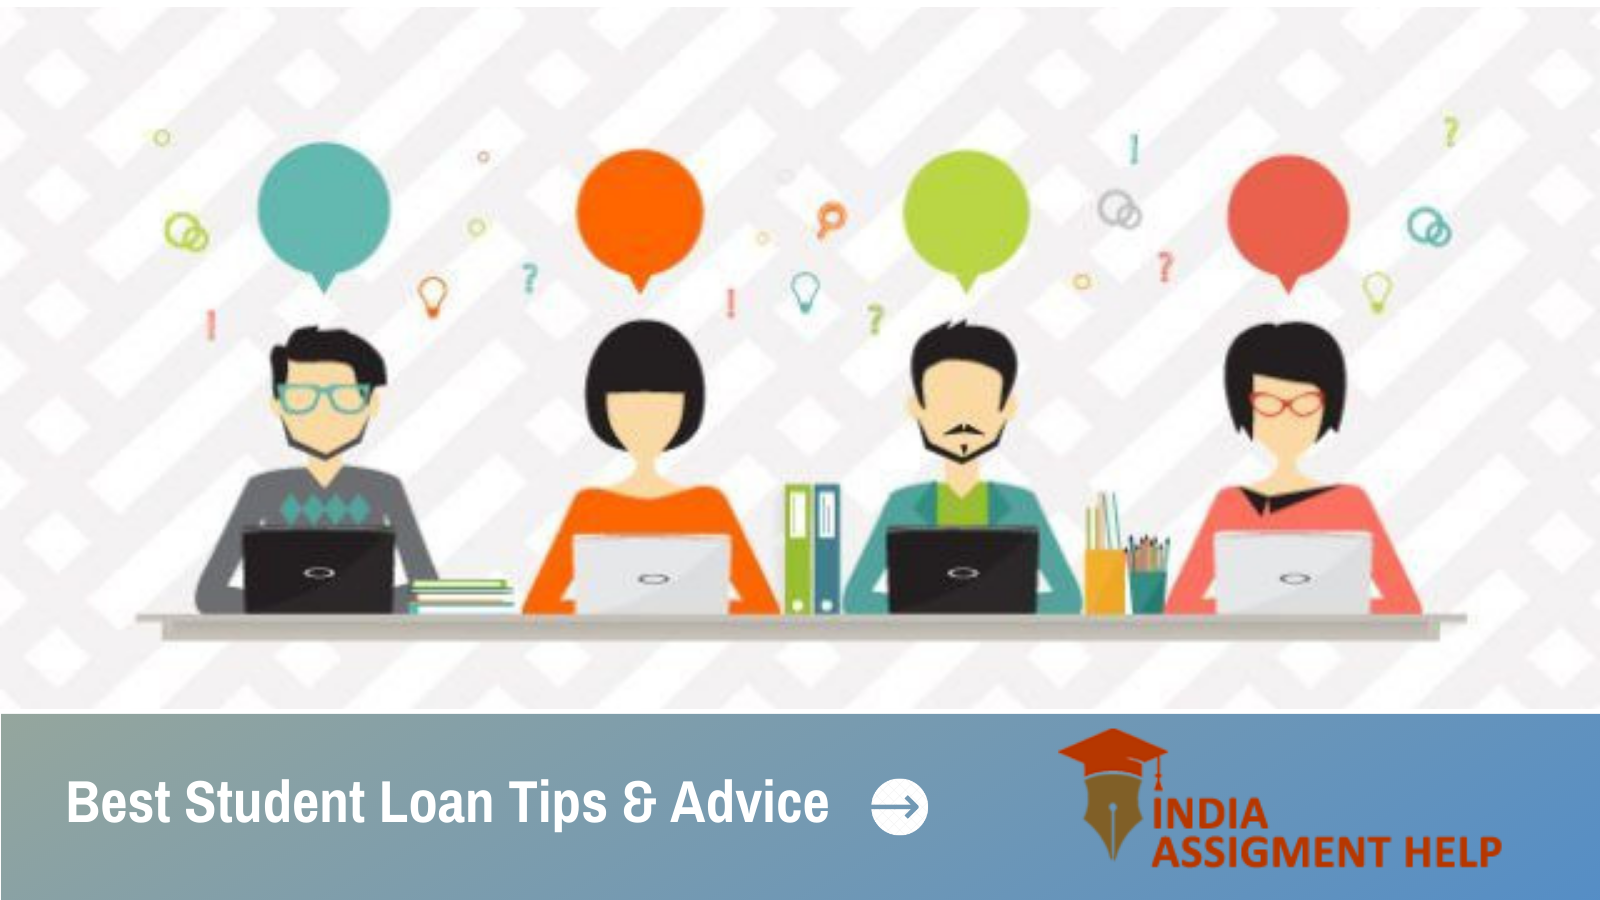 Student Loan Tips & Advice are Right Here